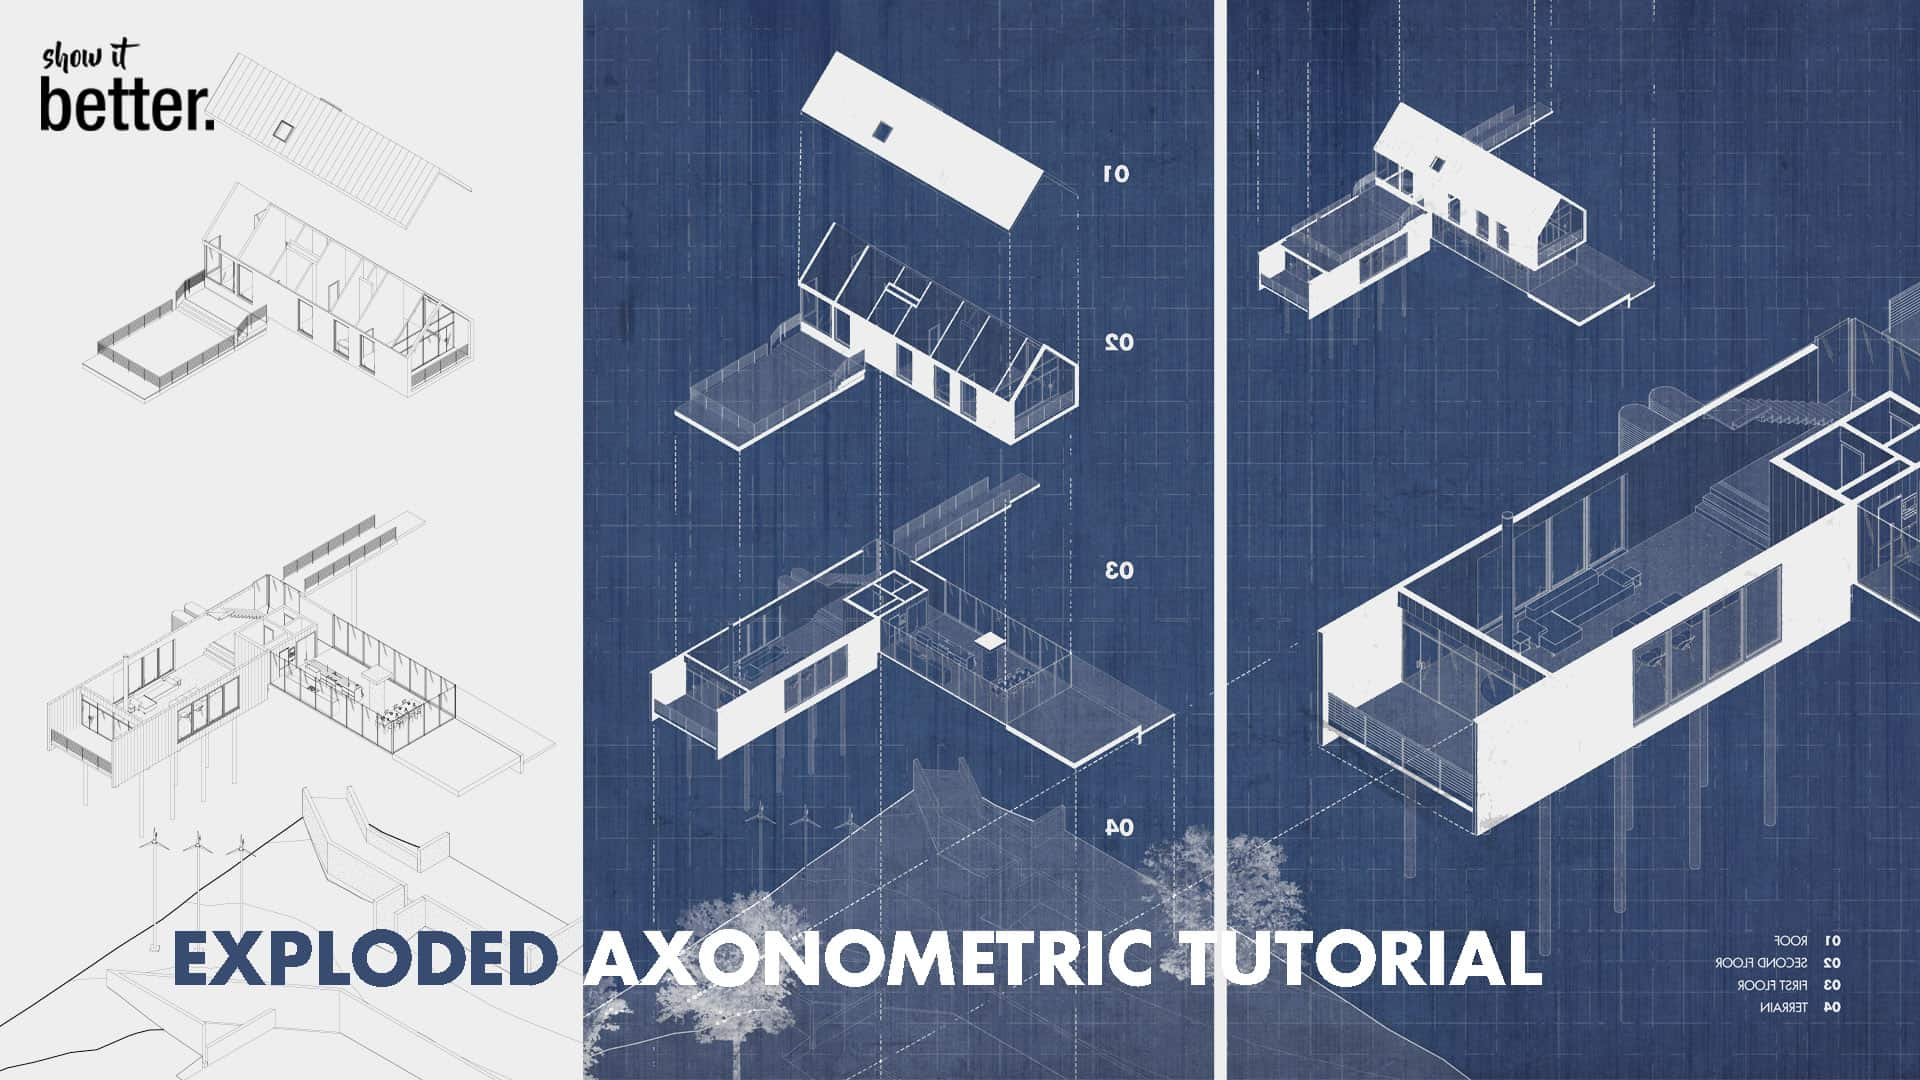 Exploded Axonometric Tutorial